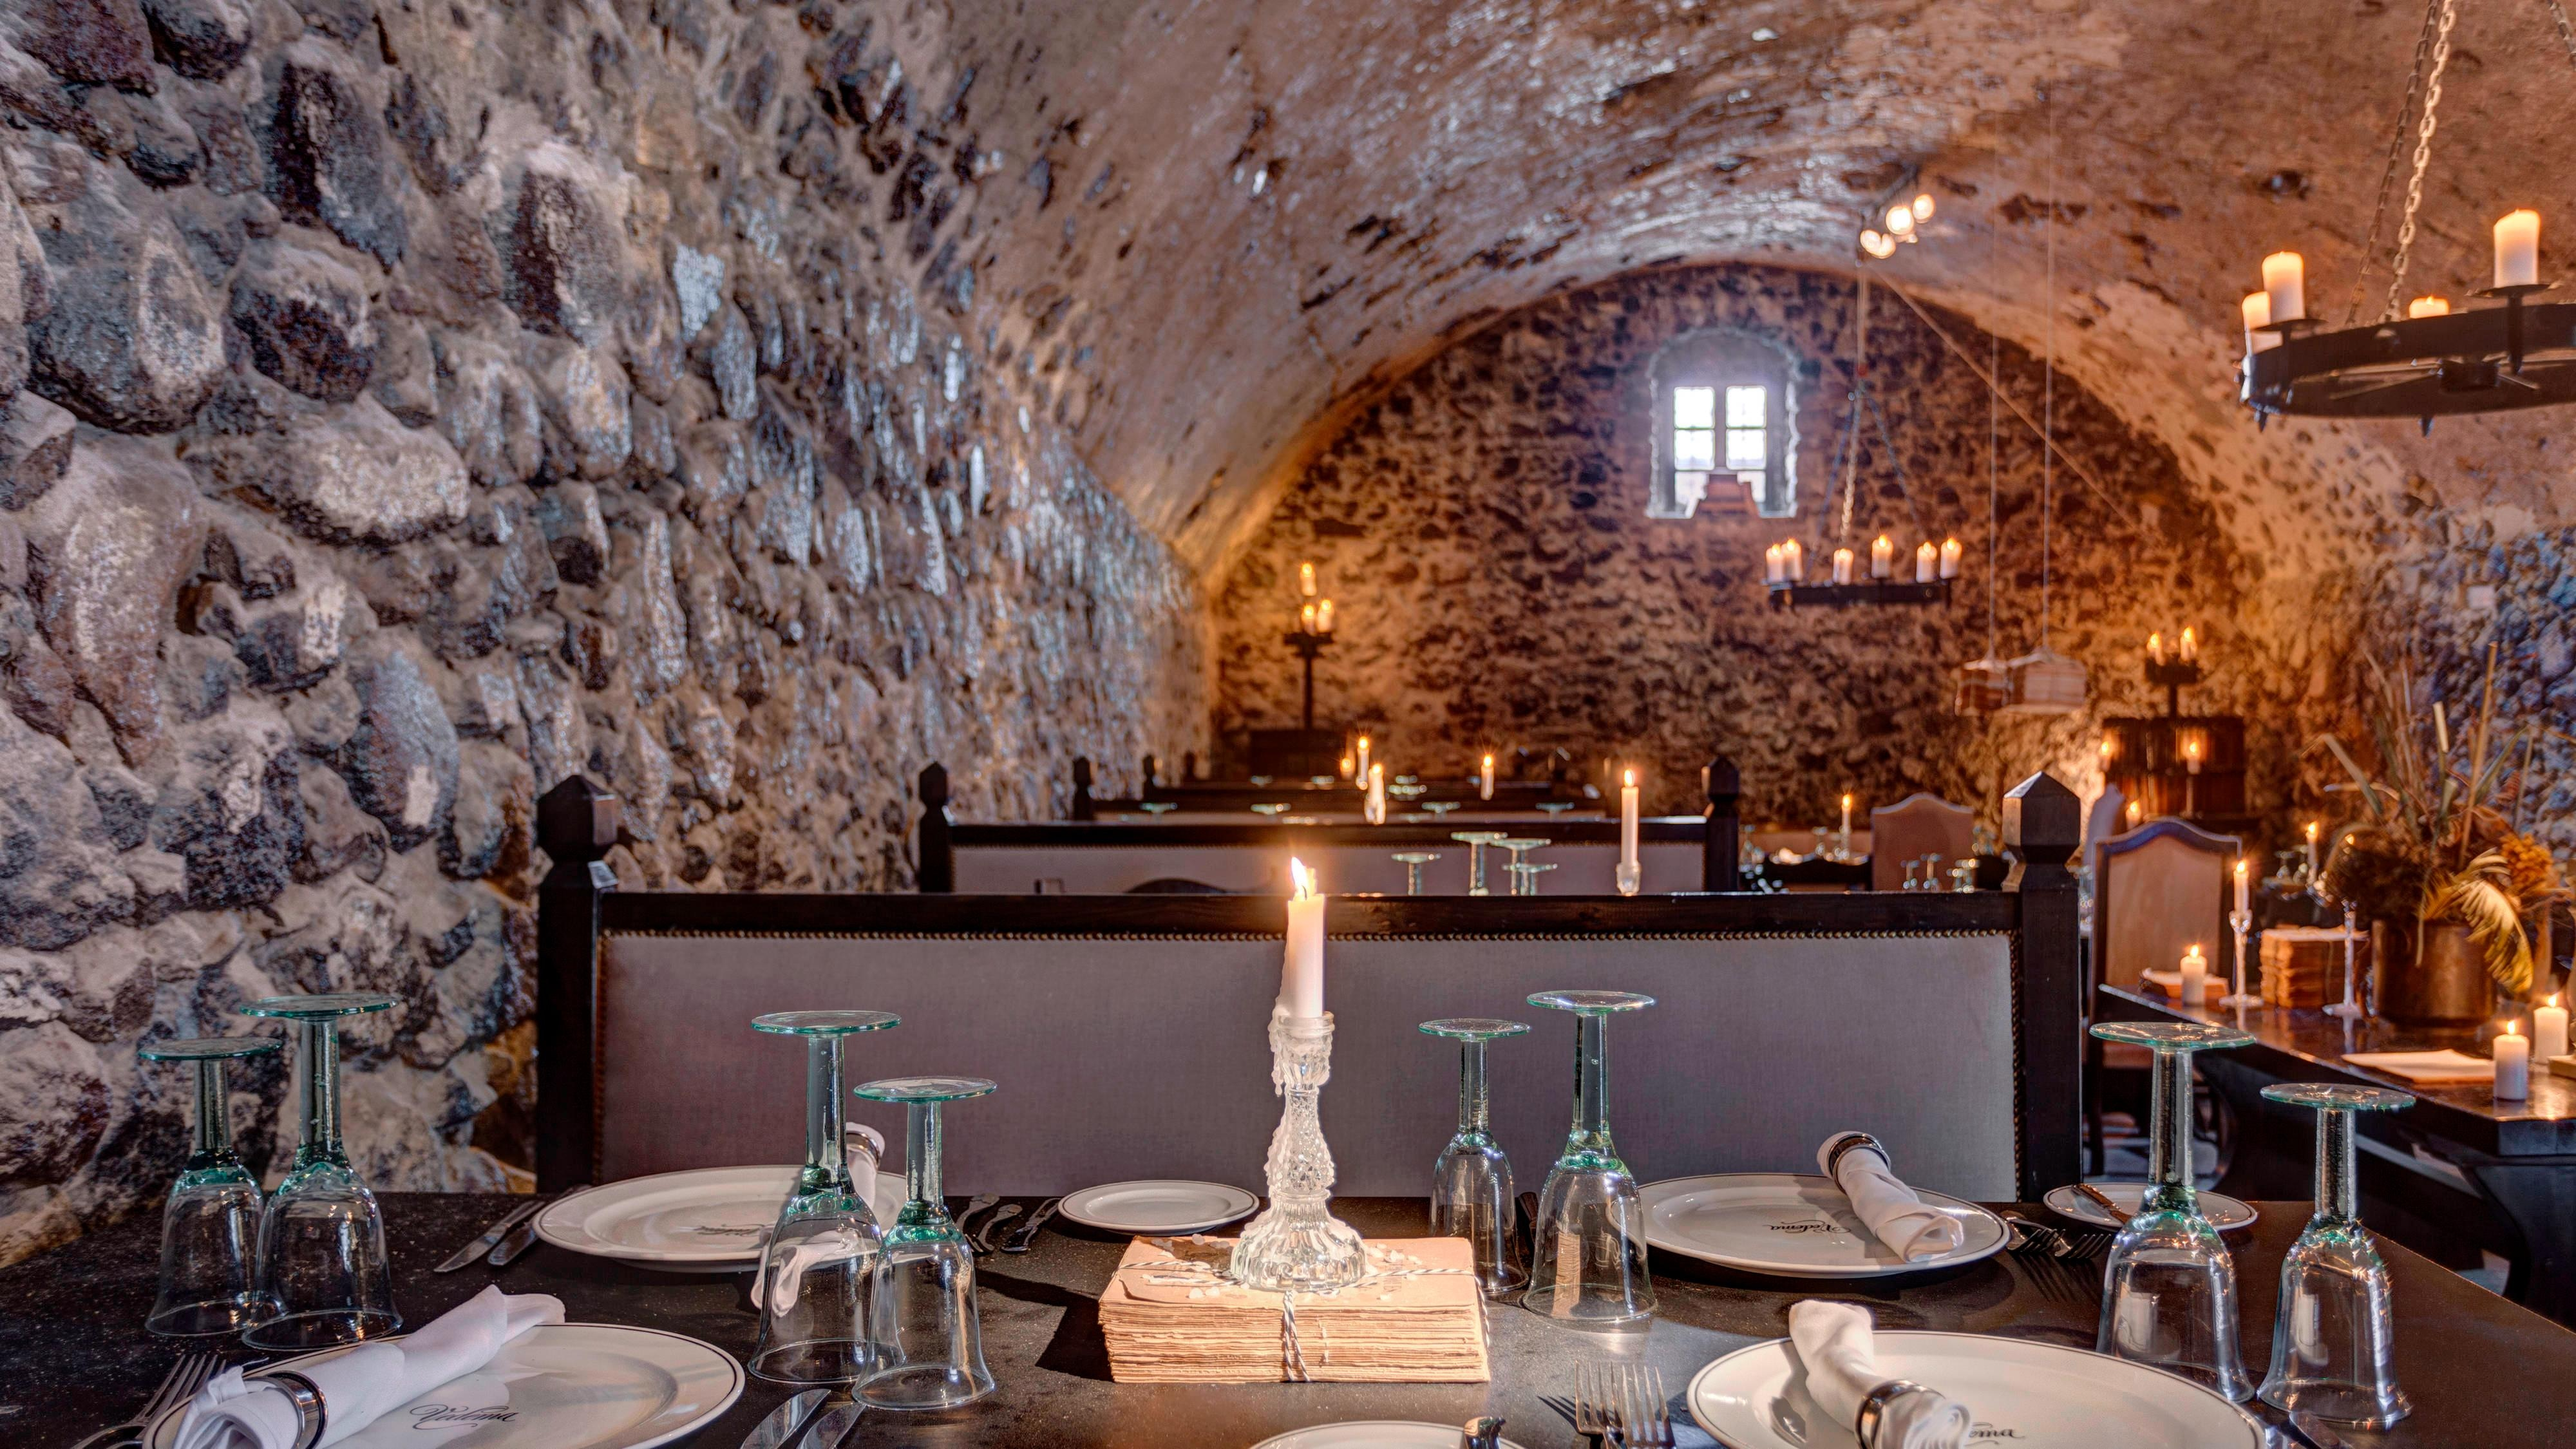 Alati Restaurant Interior in a 400 years old cave